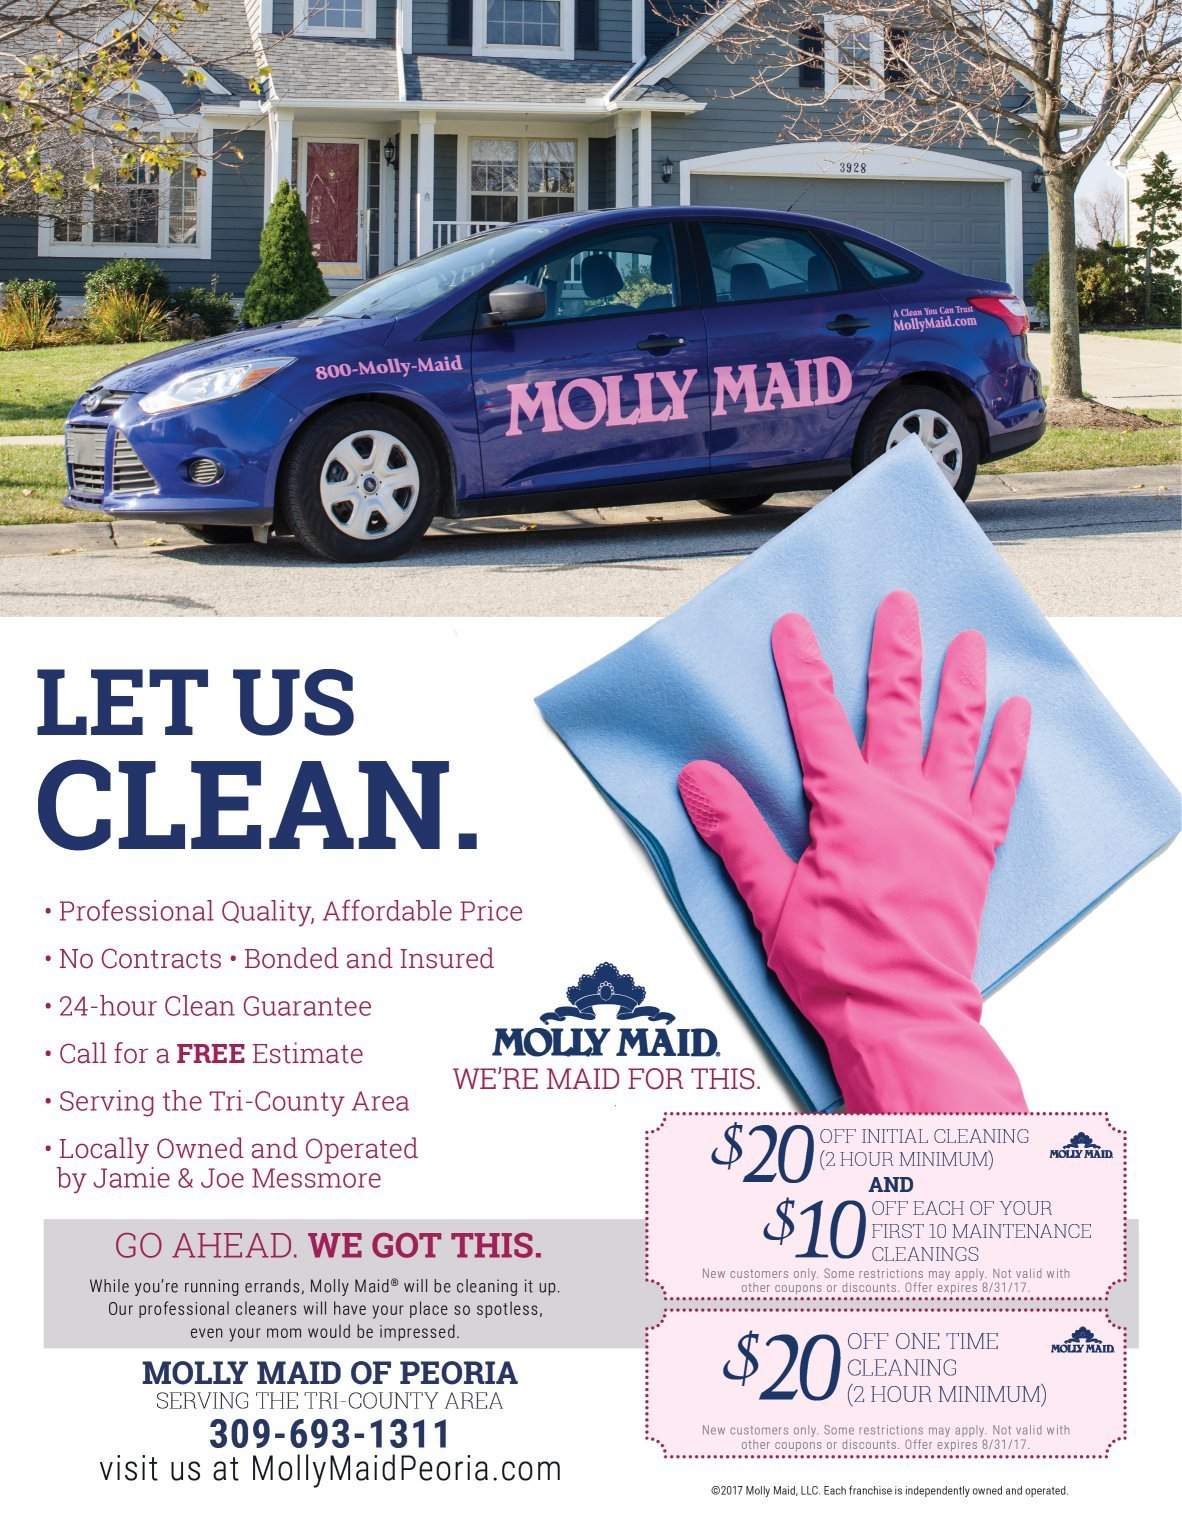 Molly Maid of Peoria coupons